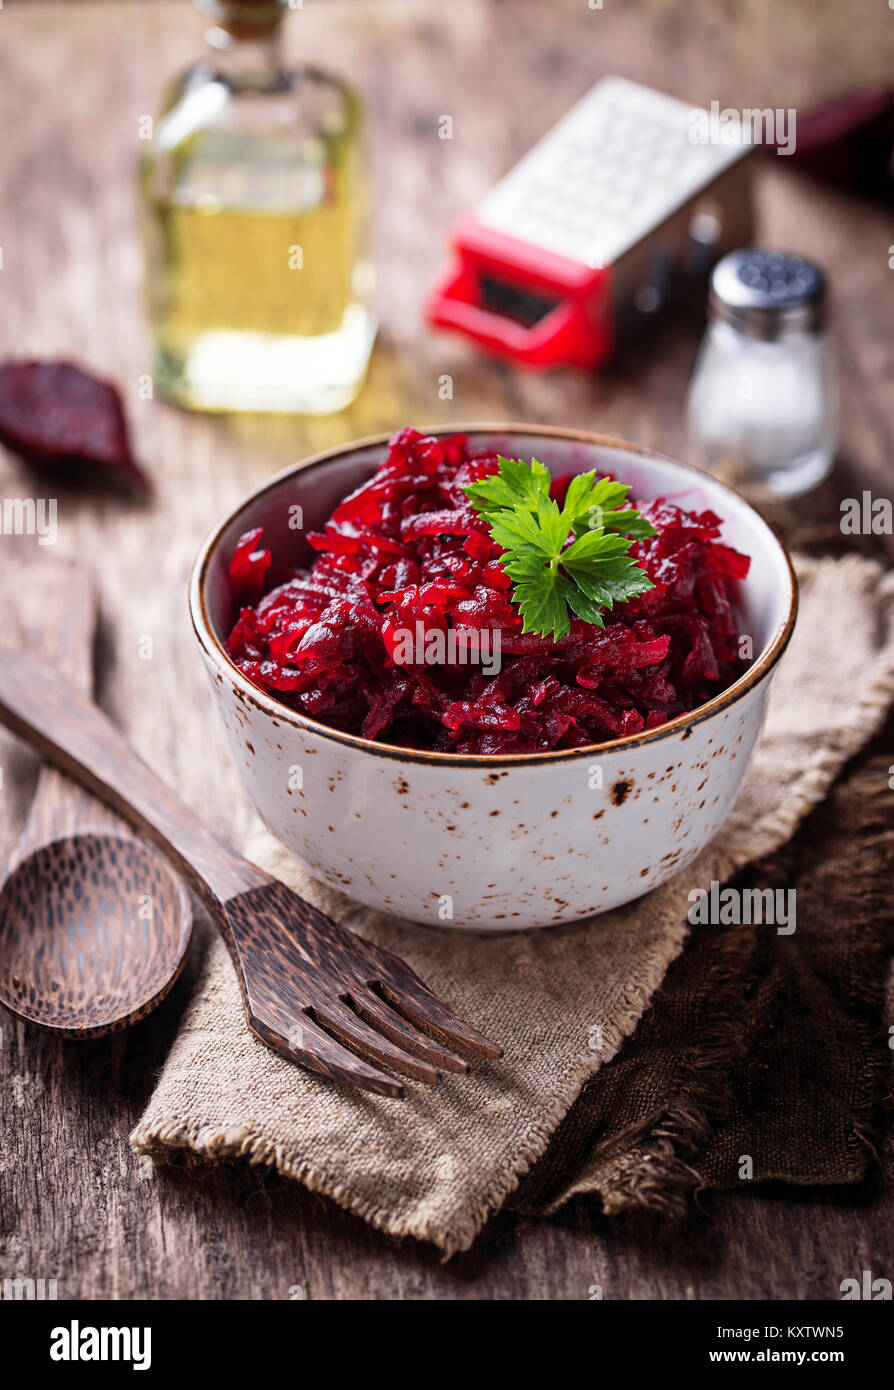 Bowl of beetroot salad on wooden background - Stock Image